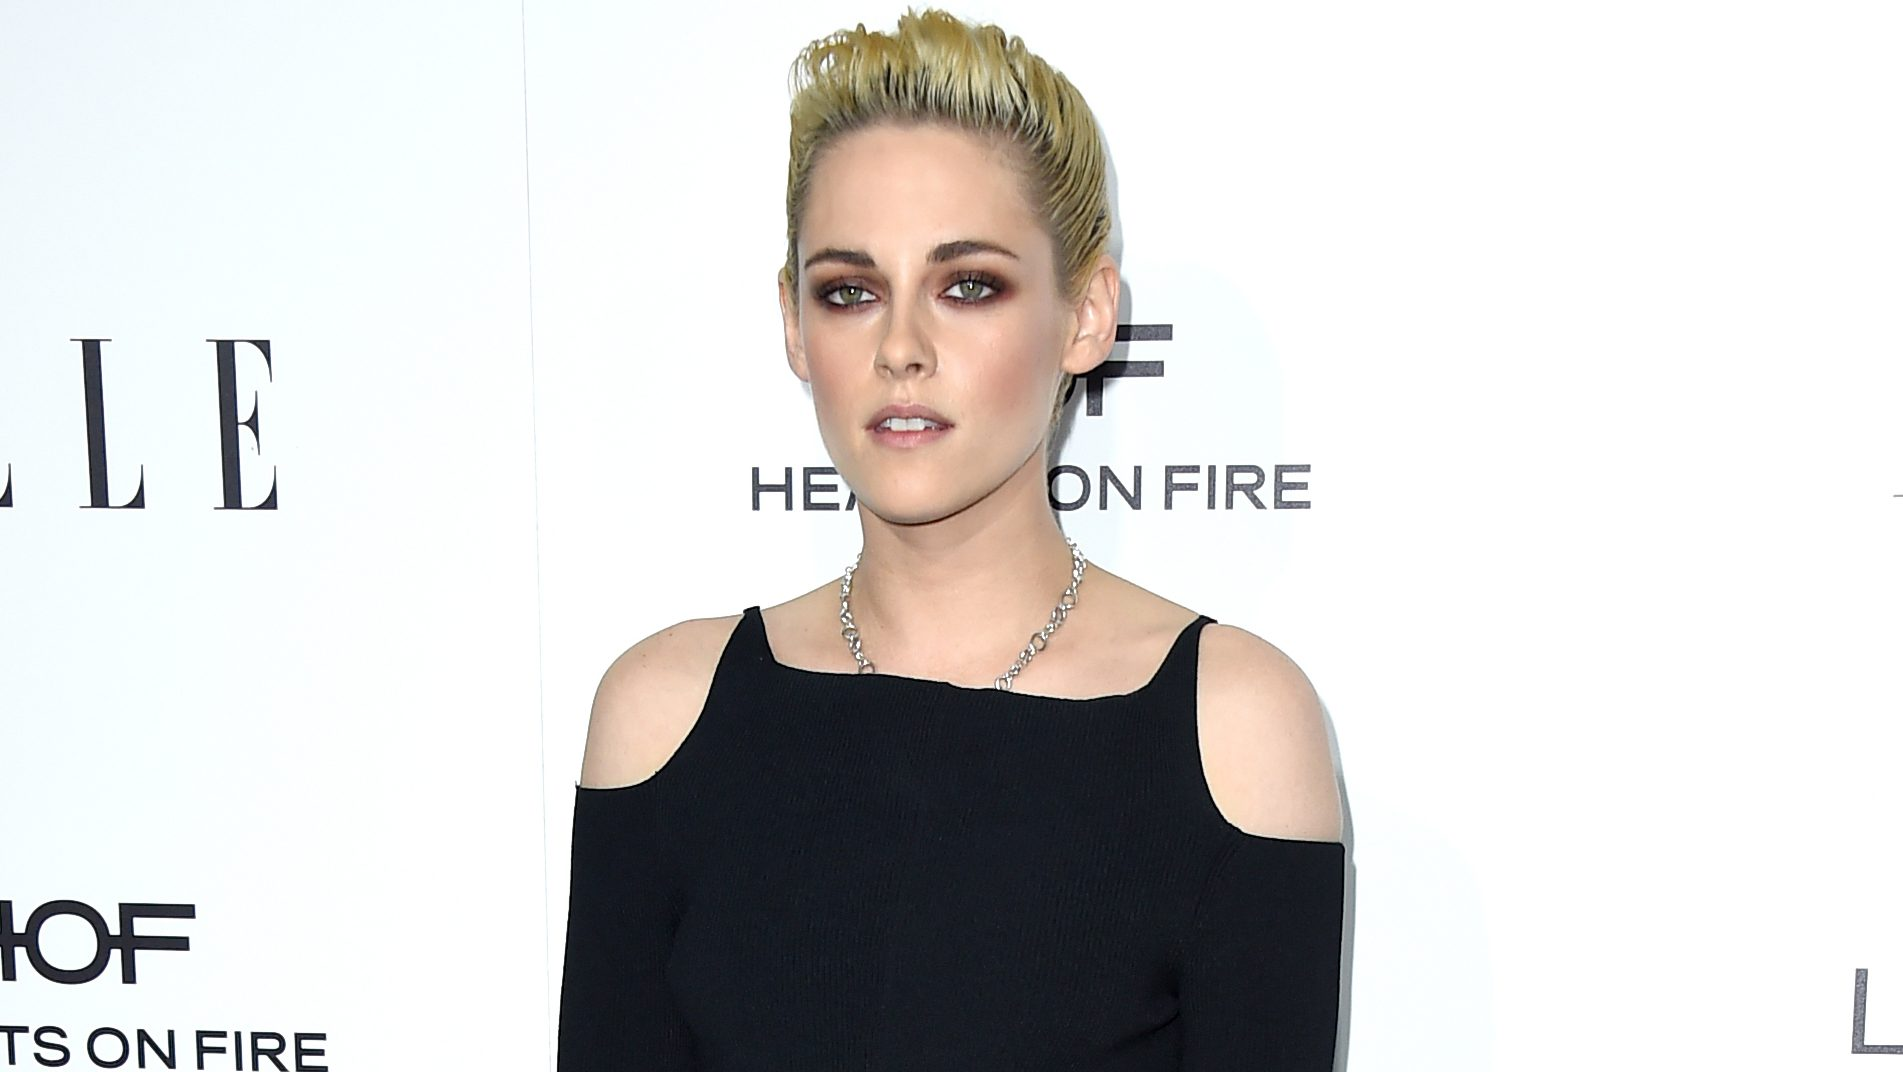 Kristen Stewart arrives at the 23rd annual ELLE Women in Hollywood Awards at the Four Season Hotel on Monday, Oct. 24, 2016, in Los Angeles. (Photo by Jordan Strauss/Invision/AP)